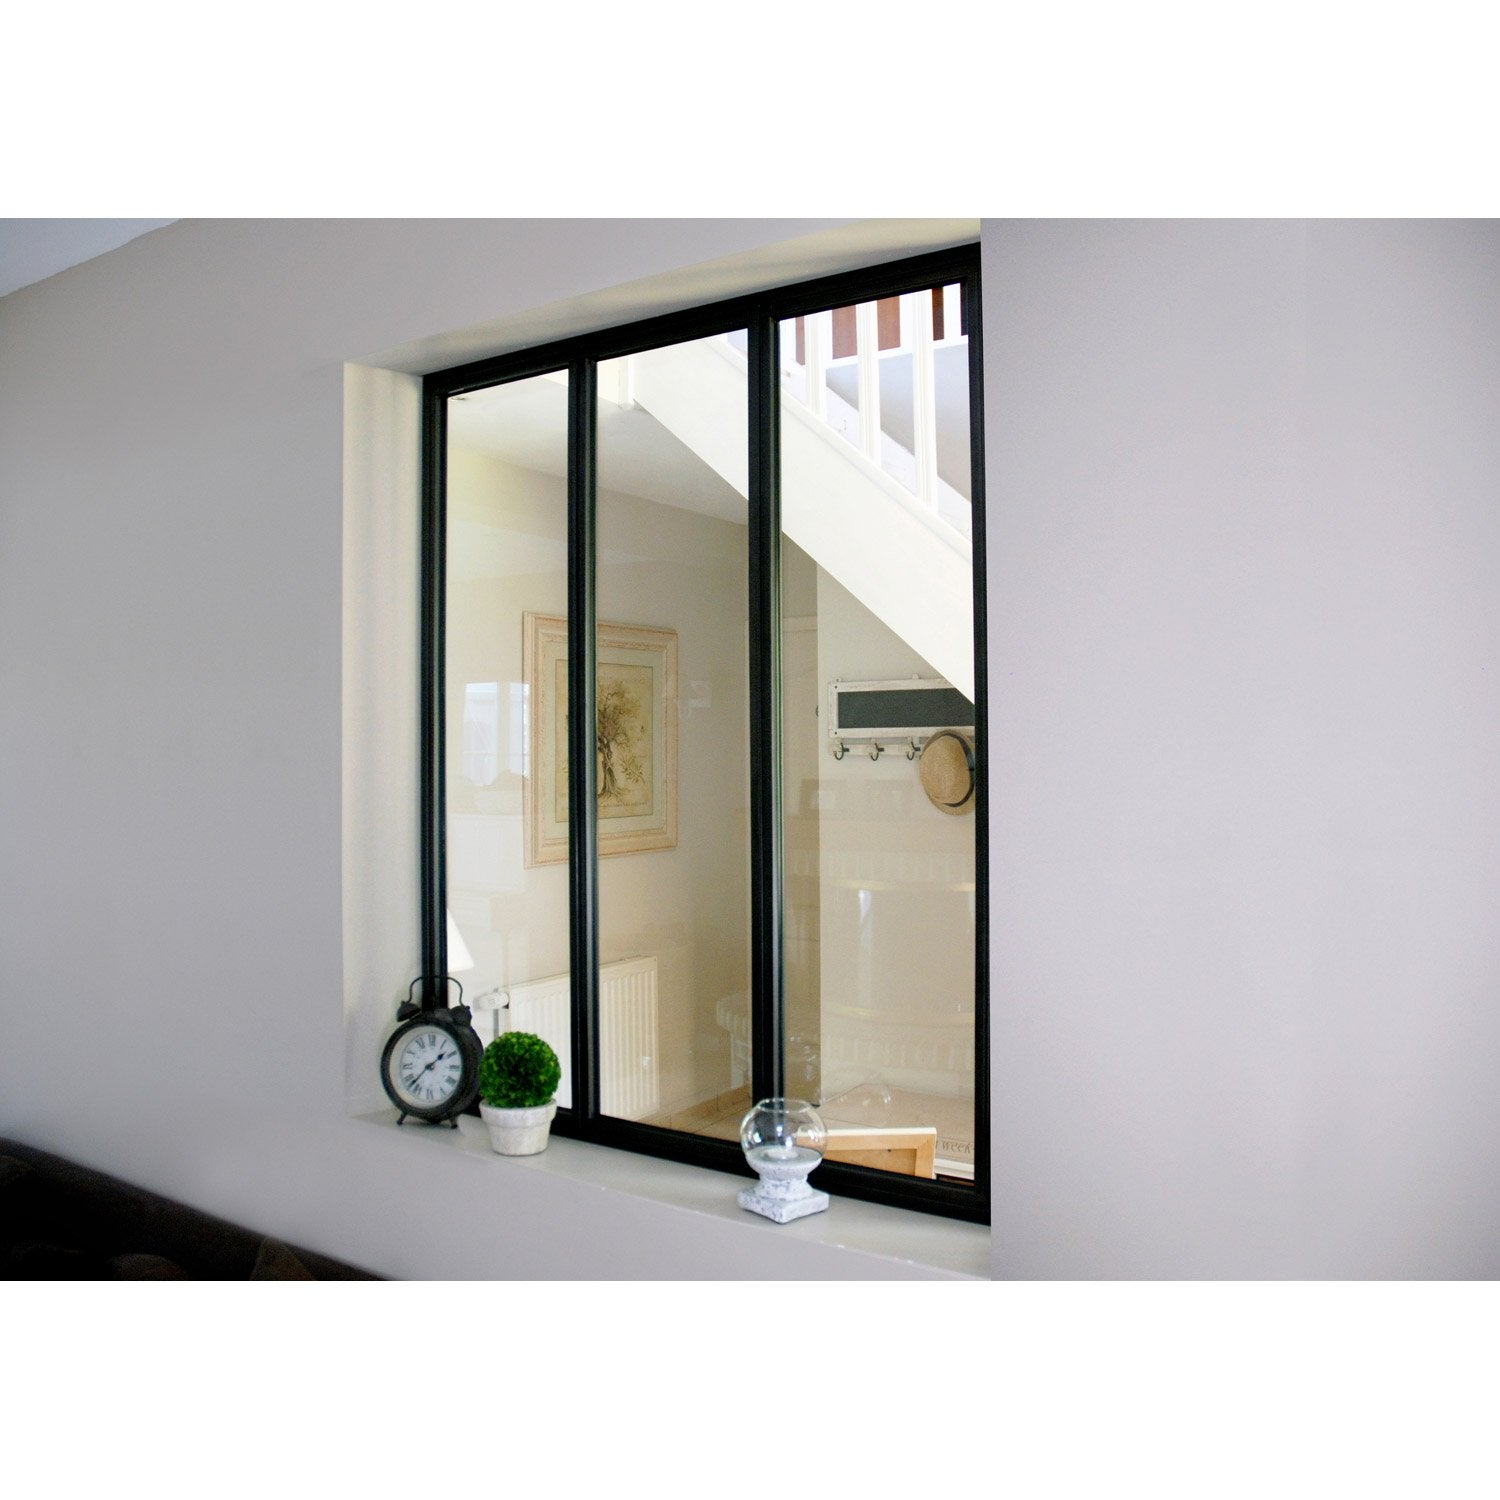 Verri re d 39 int rieur atelier en kit aluminium noir 3 for Verriere en bois interieur